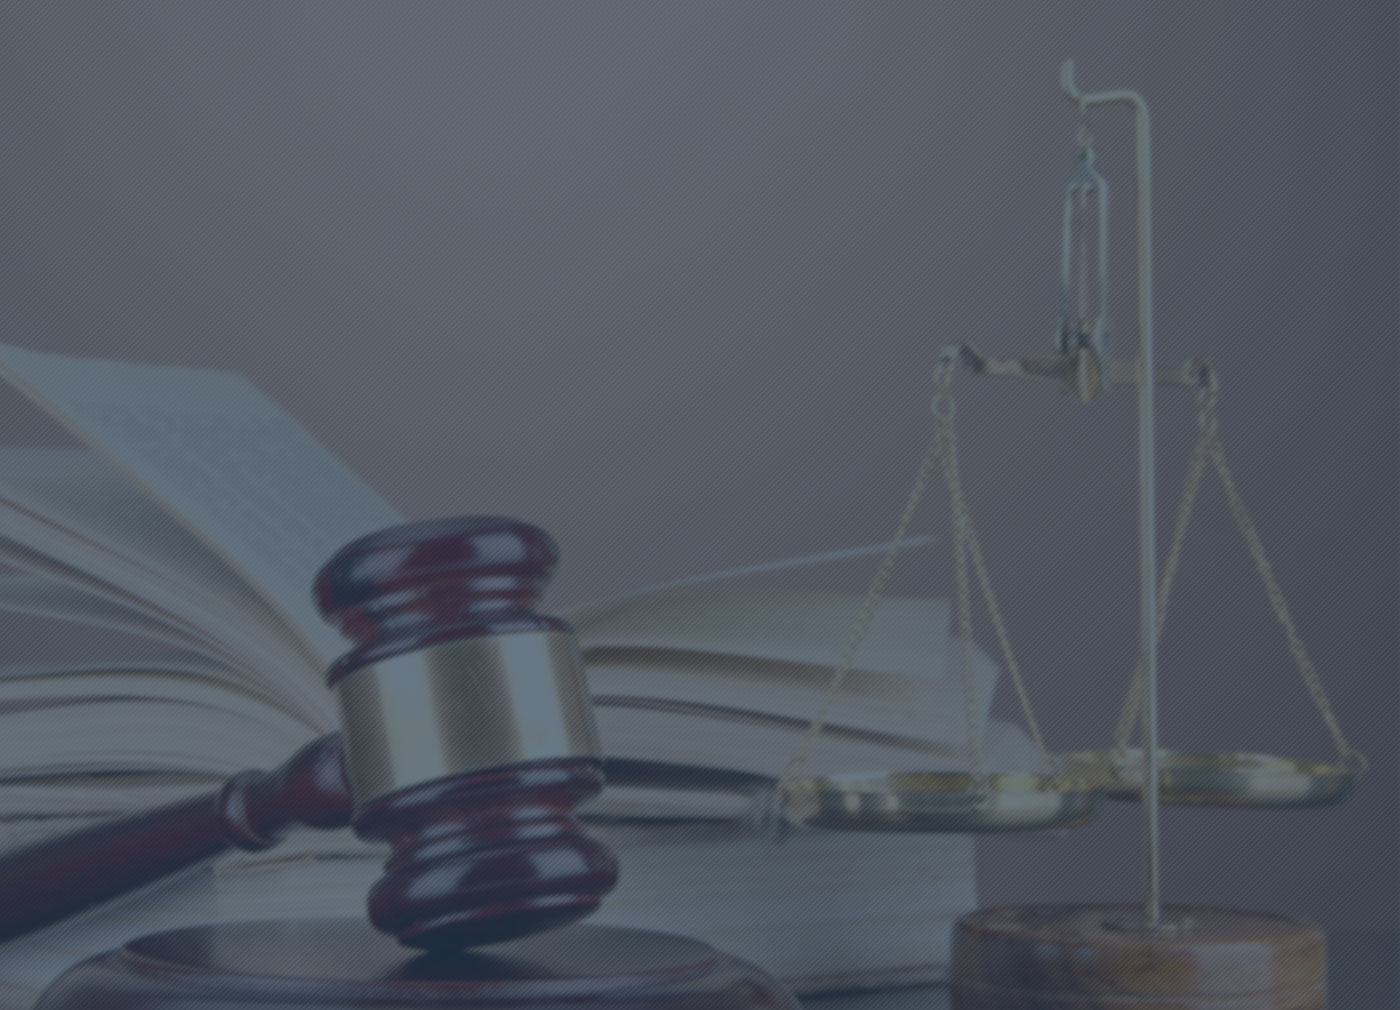 Background Image of Gavel & Scales of Justice